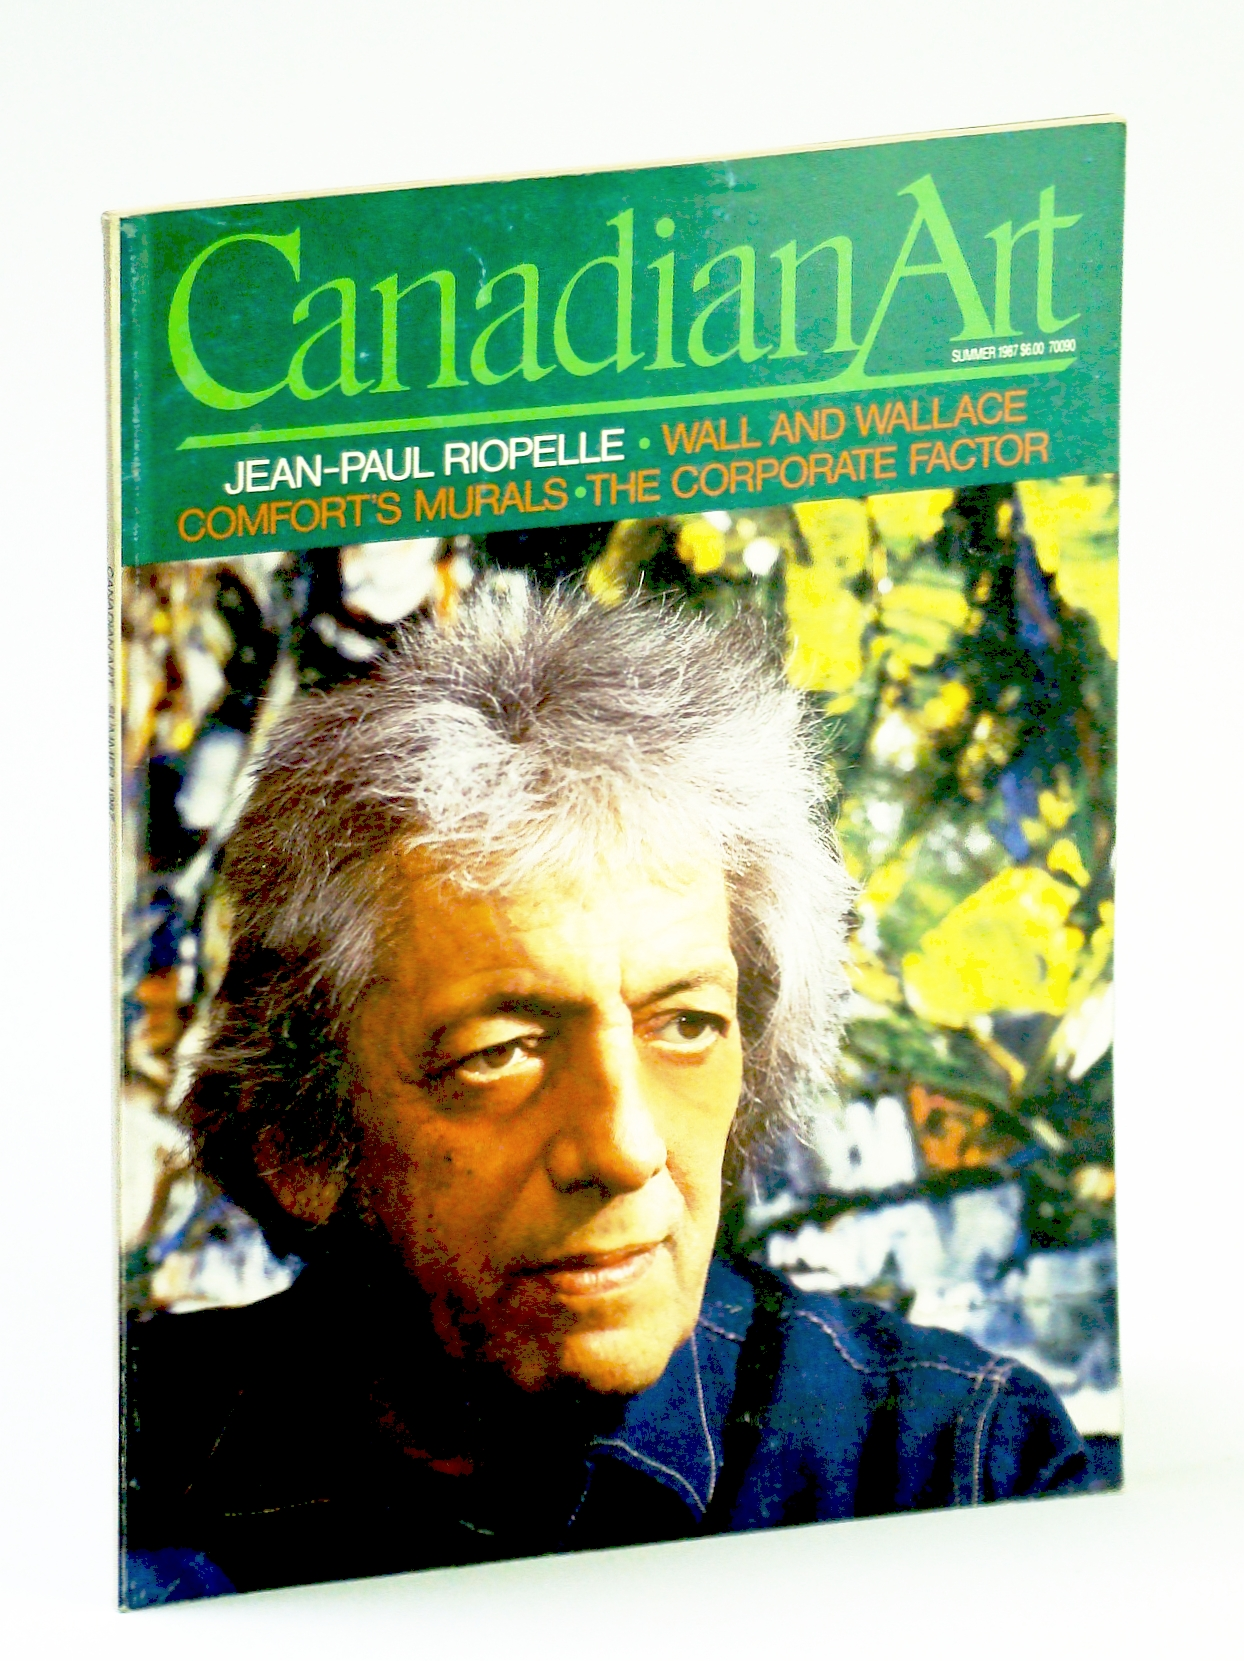 Image for Canadian Art (Magazine), Summer 1987, Volume 4, Number 2 - Charles Comfort's Murals / Jean-Paul Riopelle